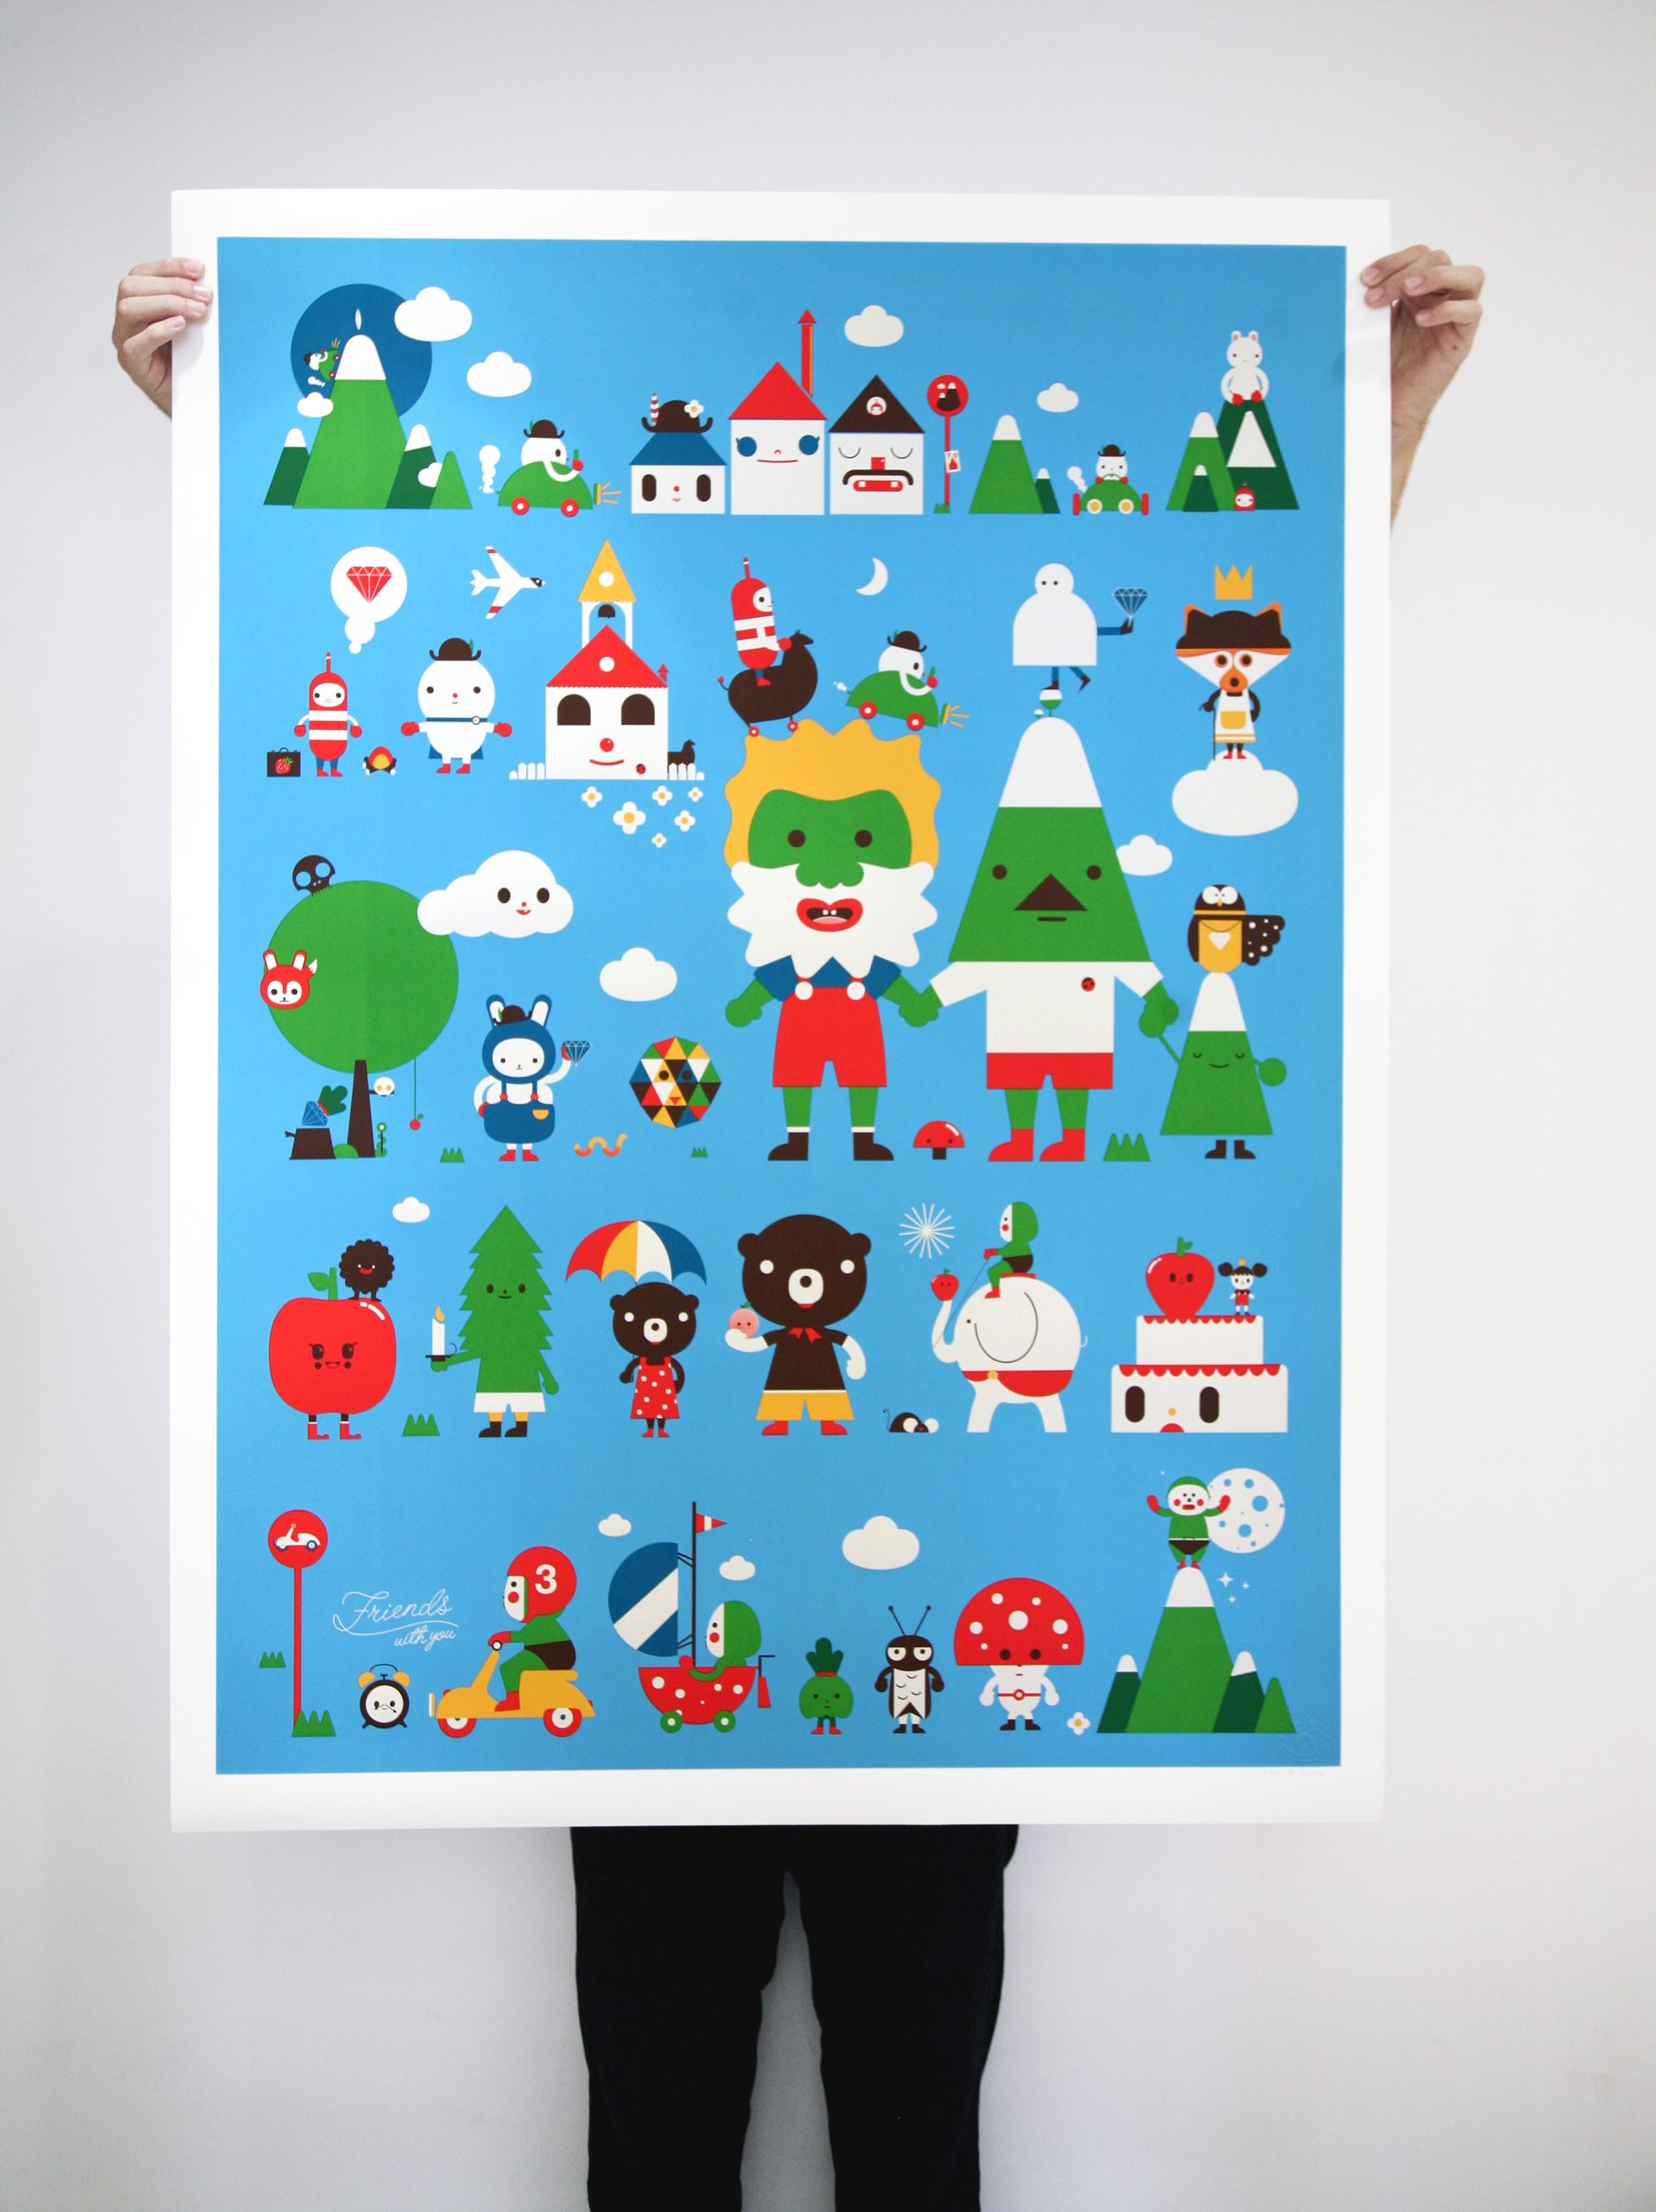 """""""Once Upon A Time"""" Edition of 50 Size: 38 x 50 inches Printed on Lenox100, 100% cotton paper, 250gsm"""